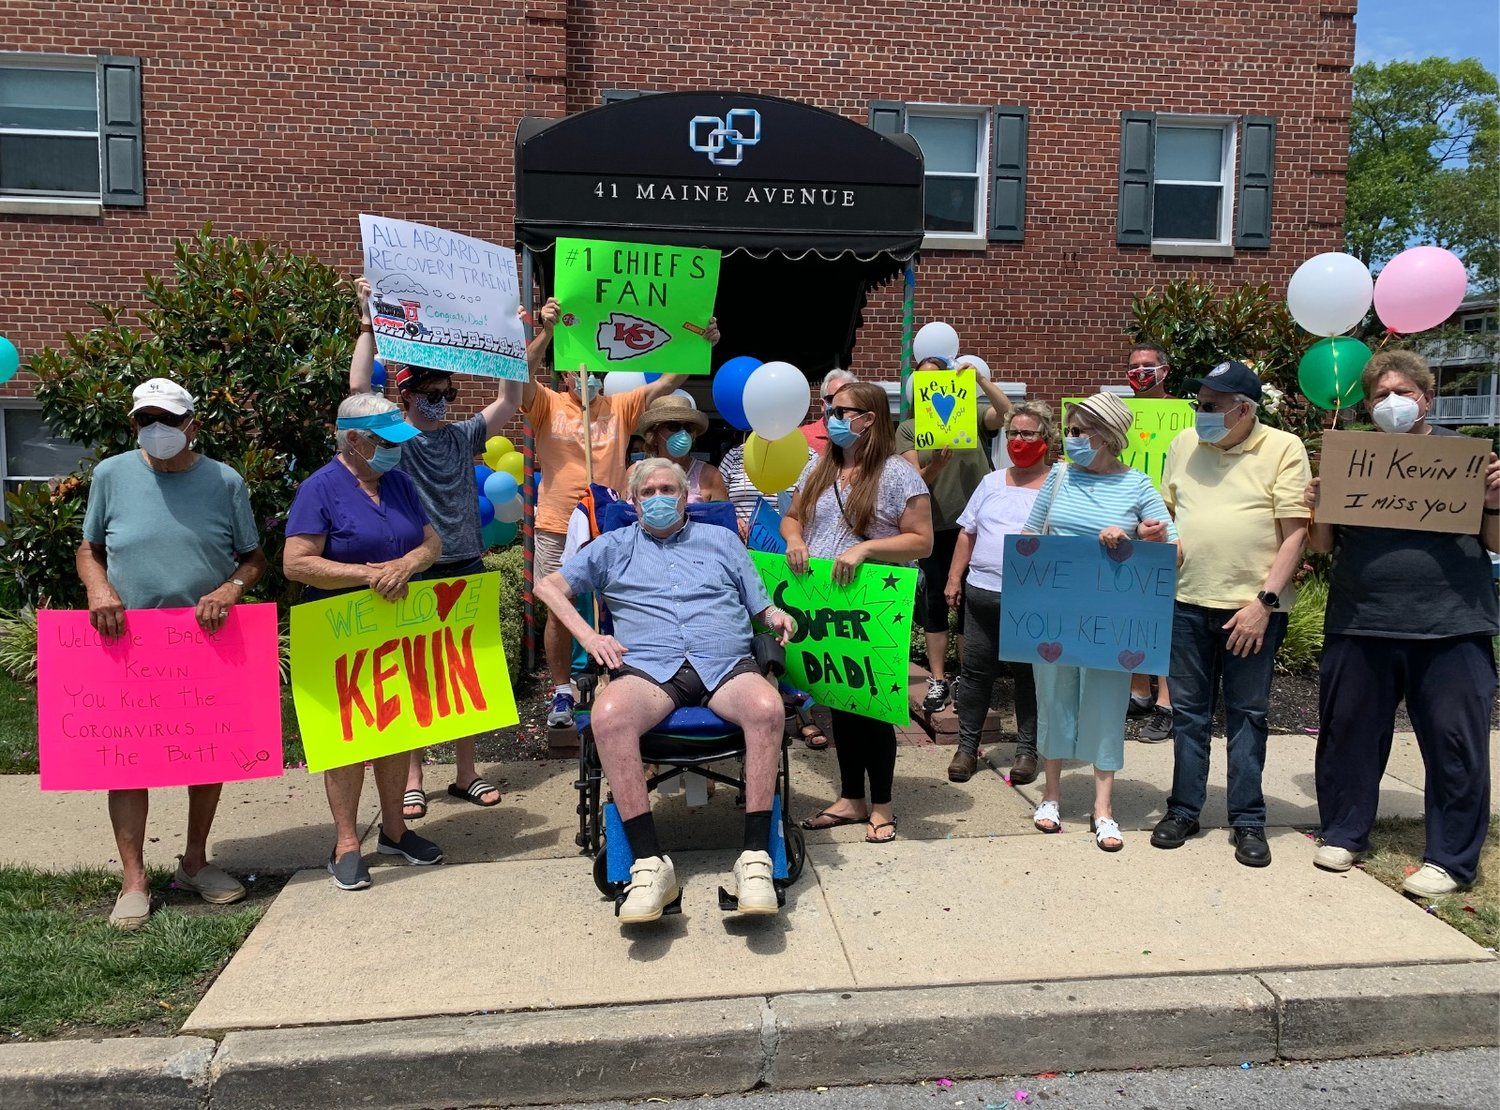 A celebration was held at The Grand Pavilion on June 24 in honor of the 60th patient to recover from Covid-19. Kevin McCay, center, was the 60th patient to recover from the disease.